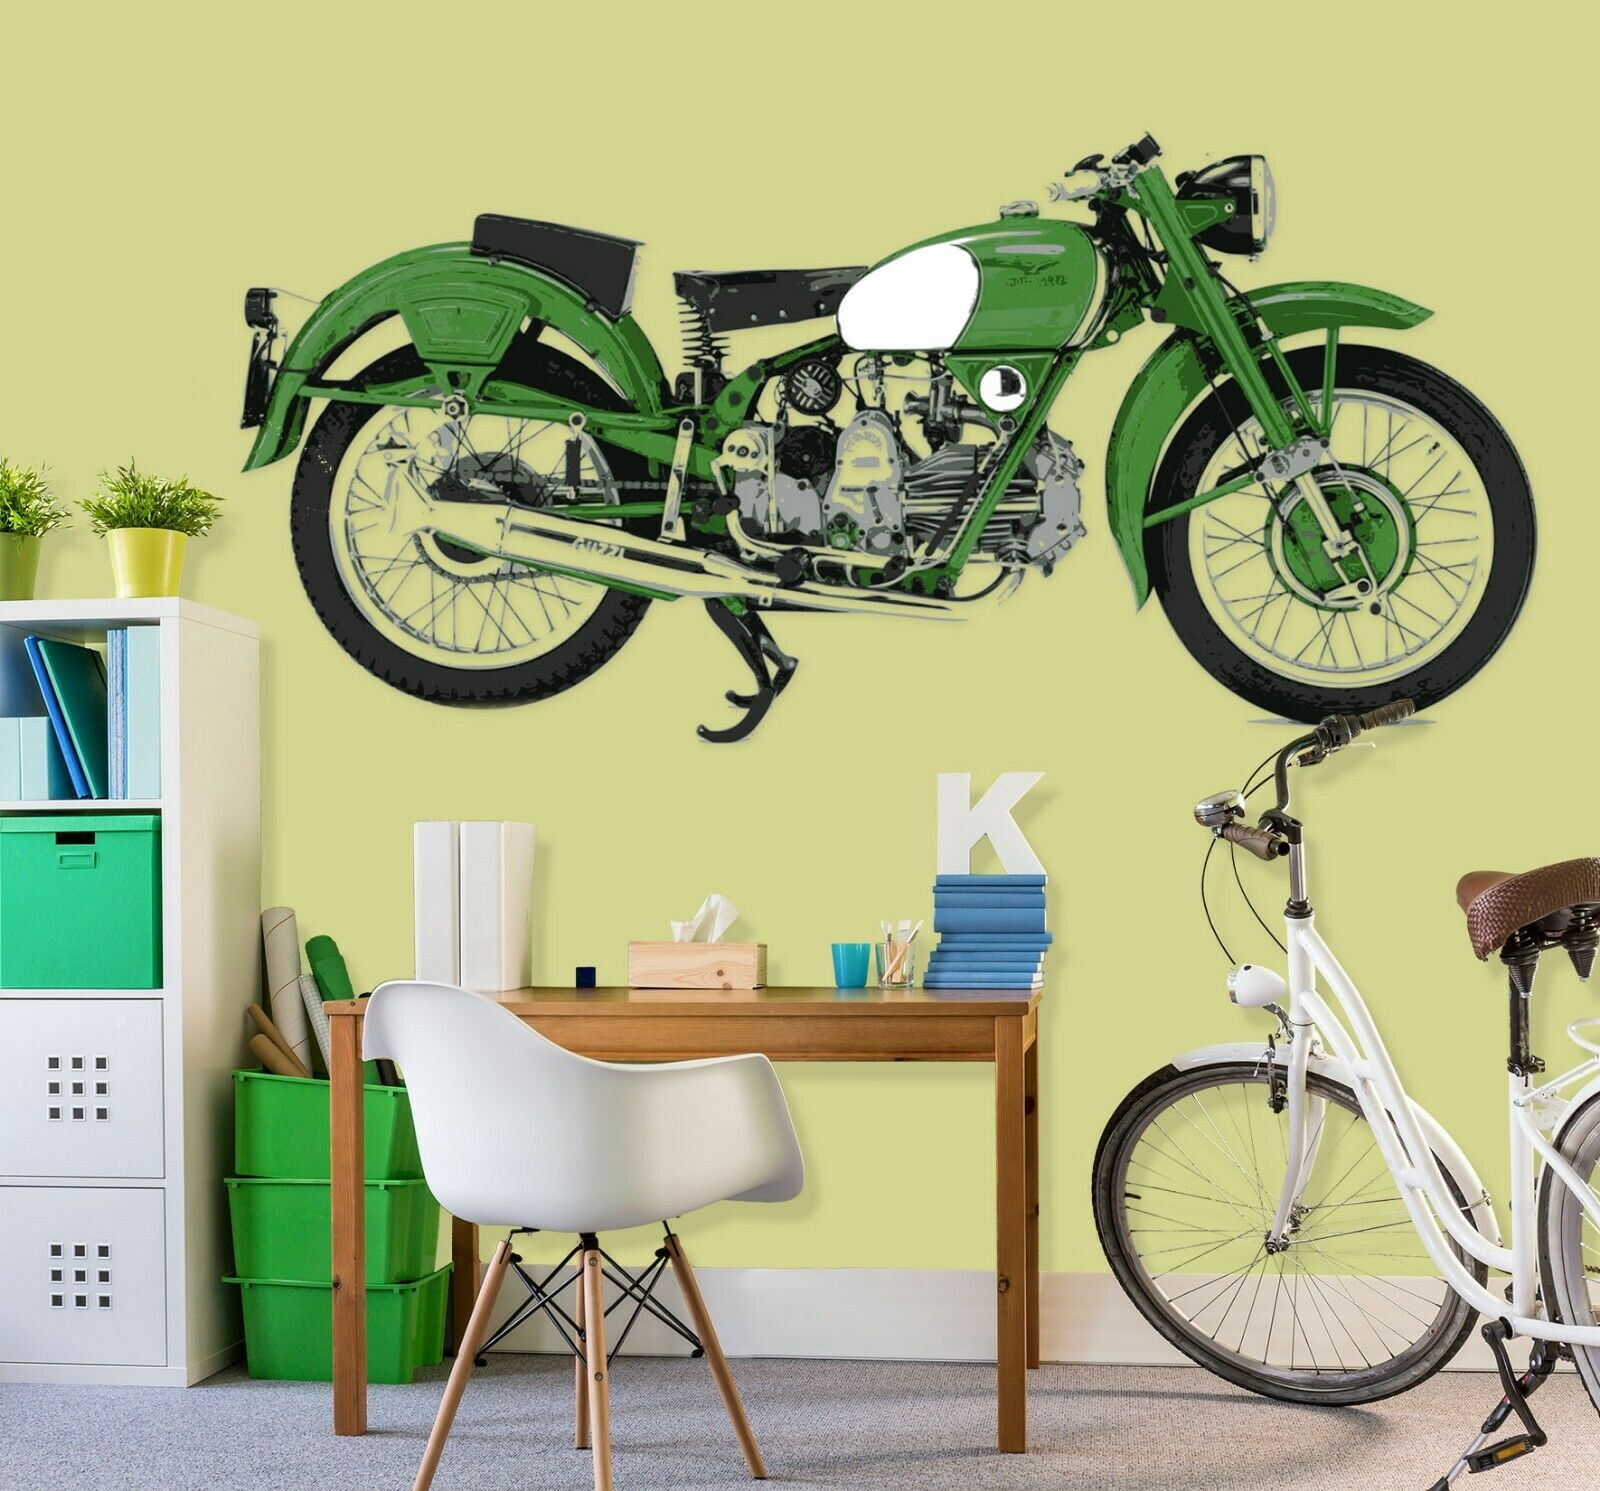 3D Grün Motorbike B93 Car Wallpaper Mural Poster Transport Wall Stickers Wed